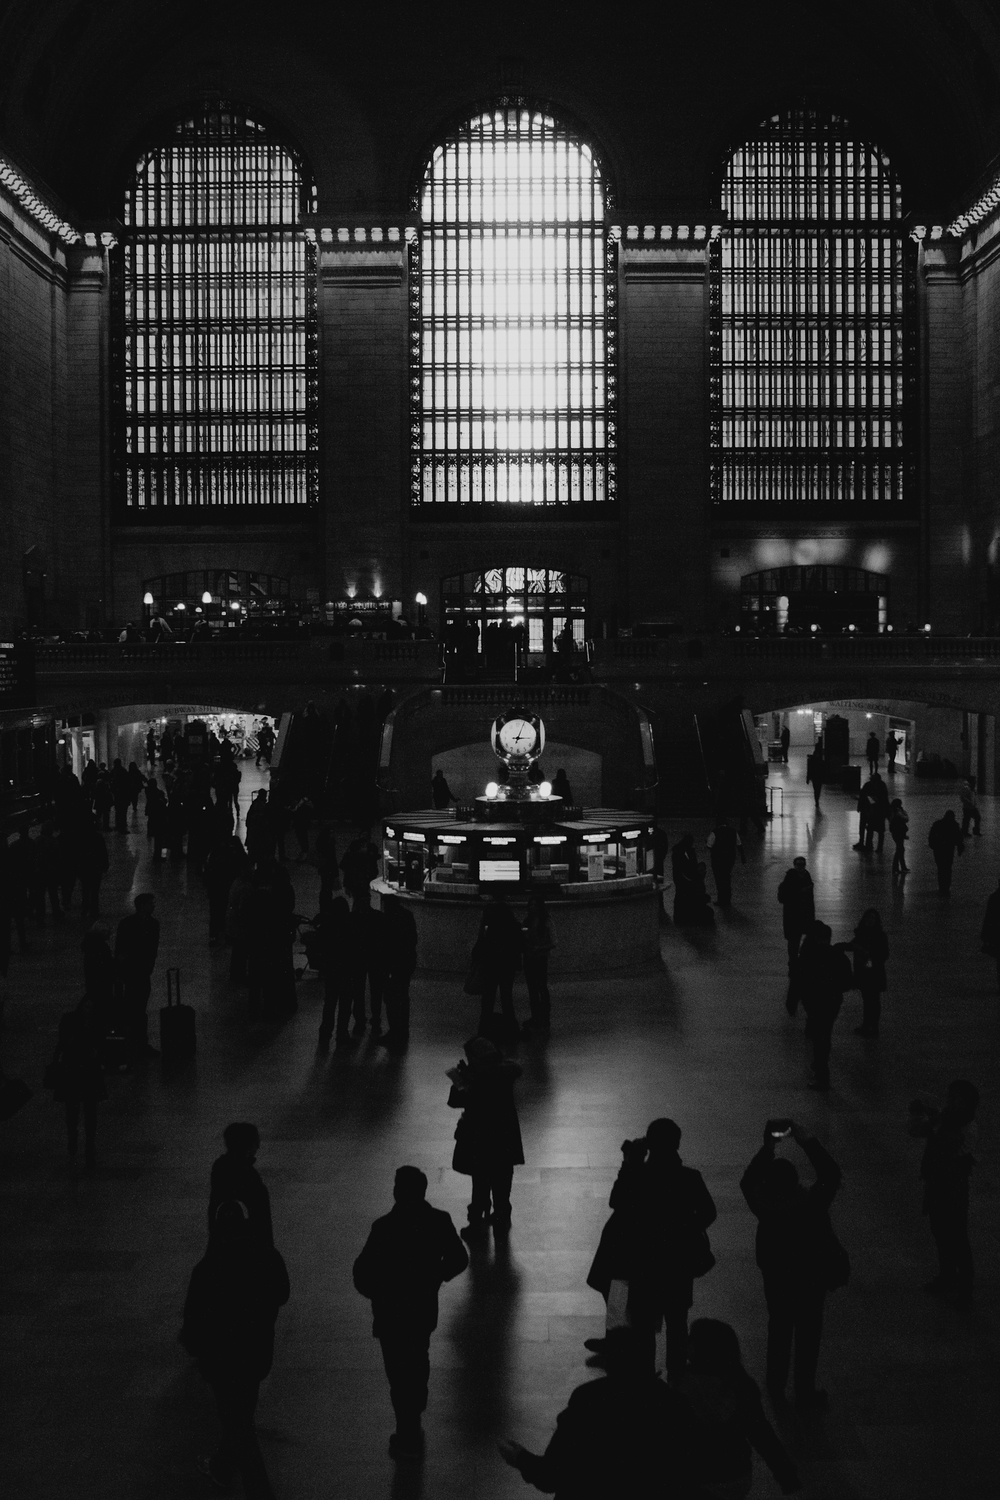 """3:10"" Grand Central Station, New York City 2014"